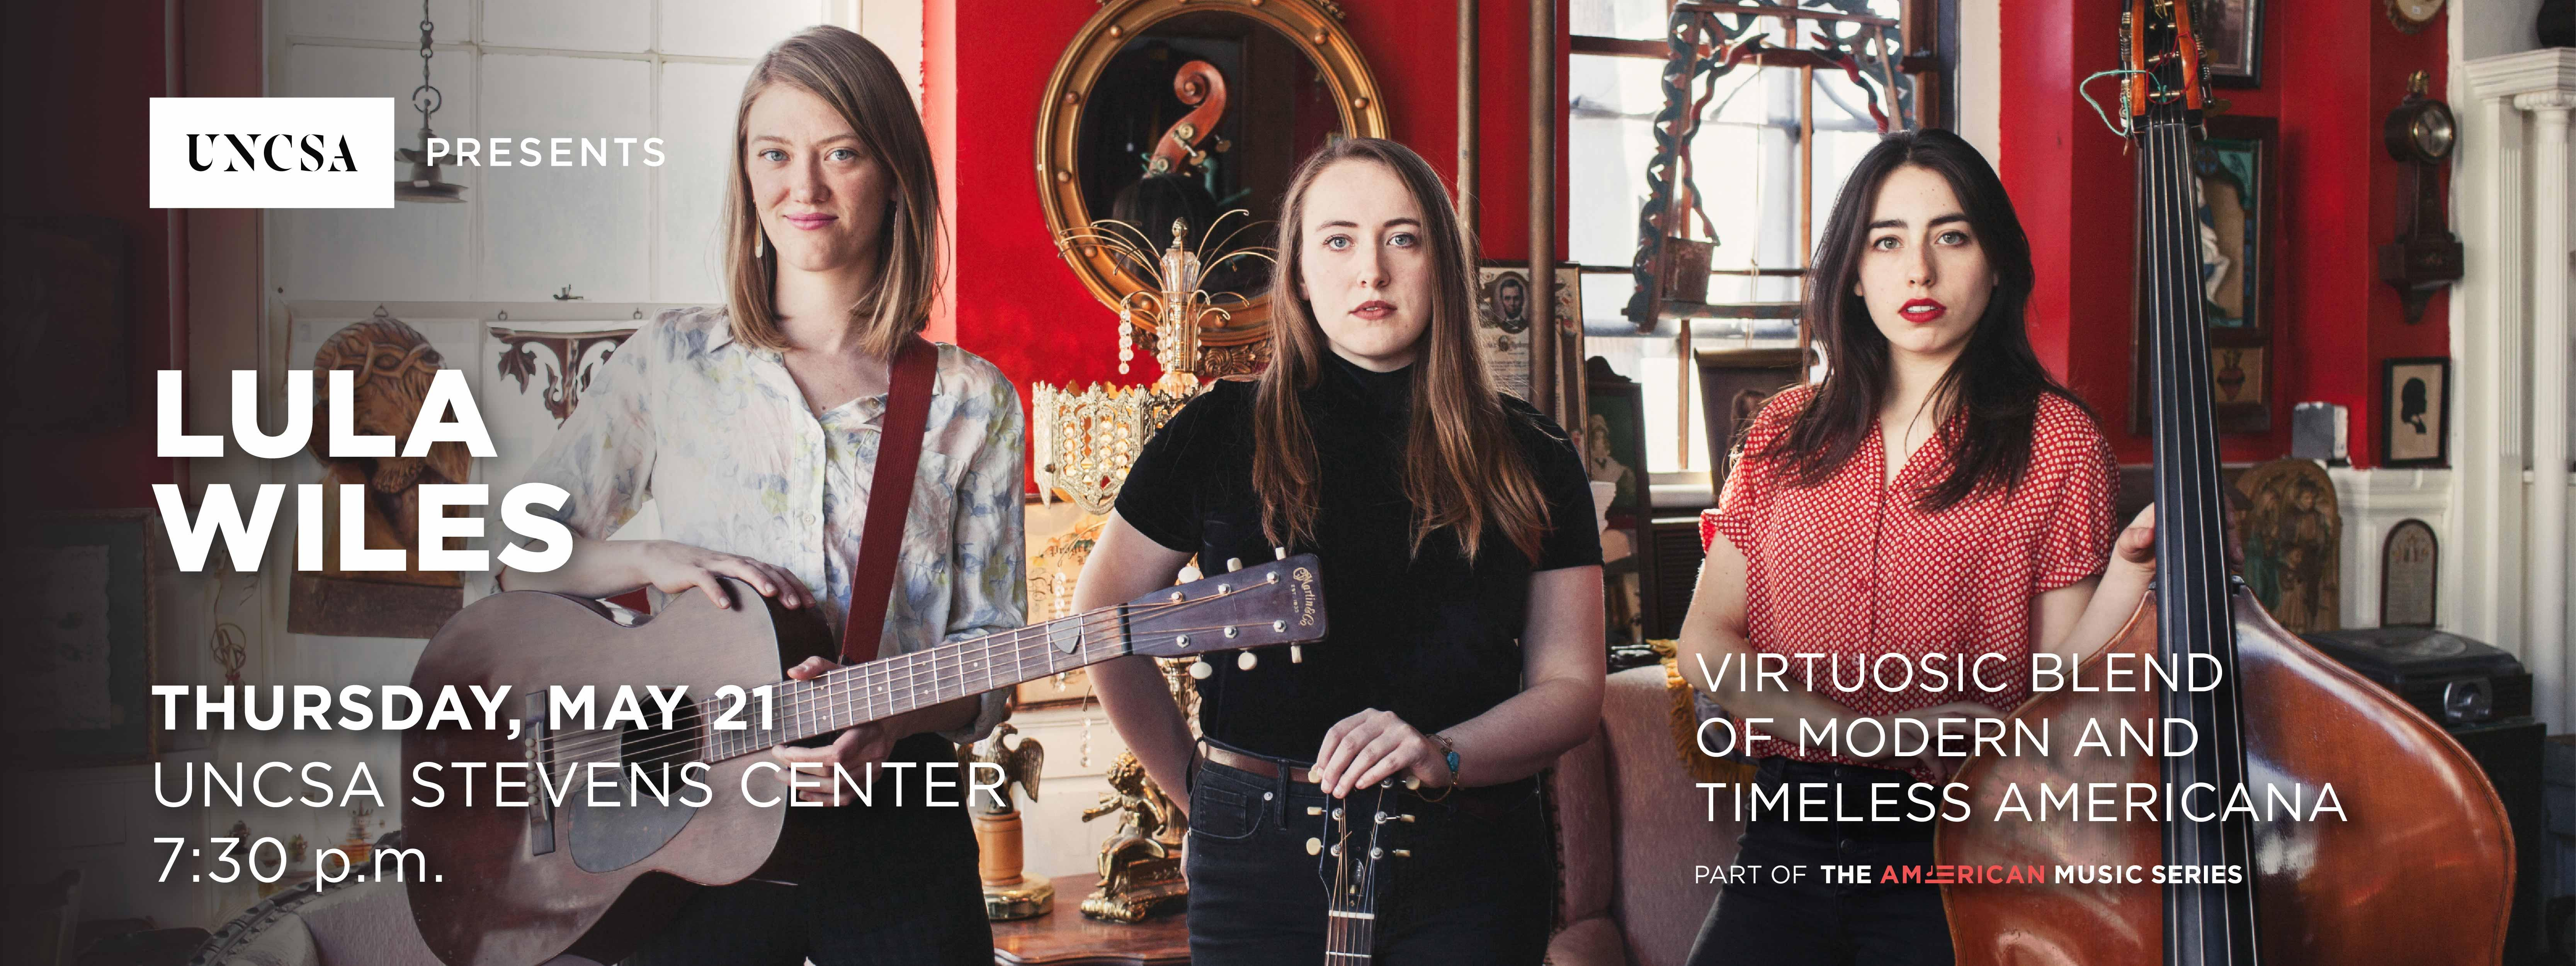 Lula Wiles brings their beautiful blend of modern/americana music to the Stevens Center stage.>>BUY TICKETS